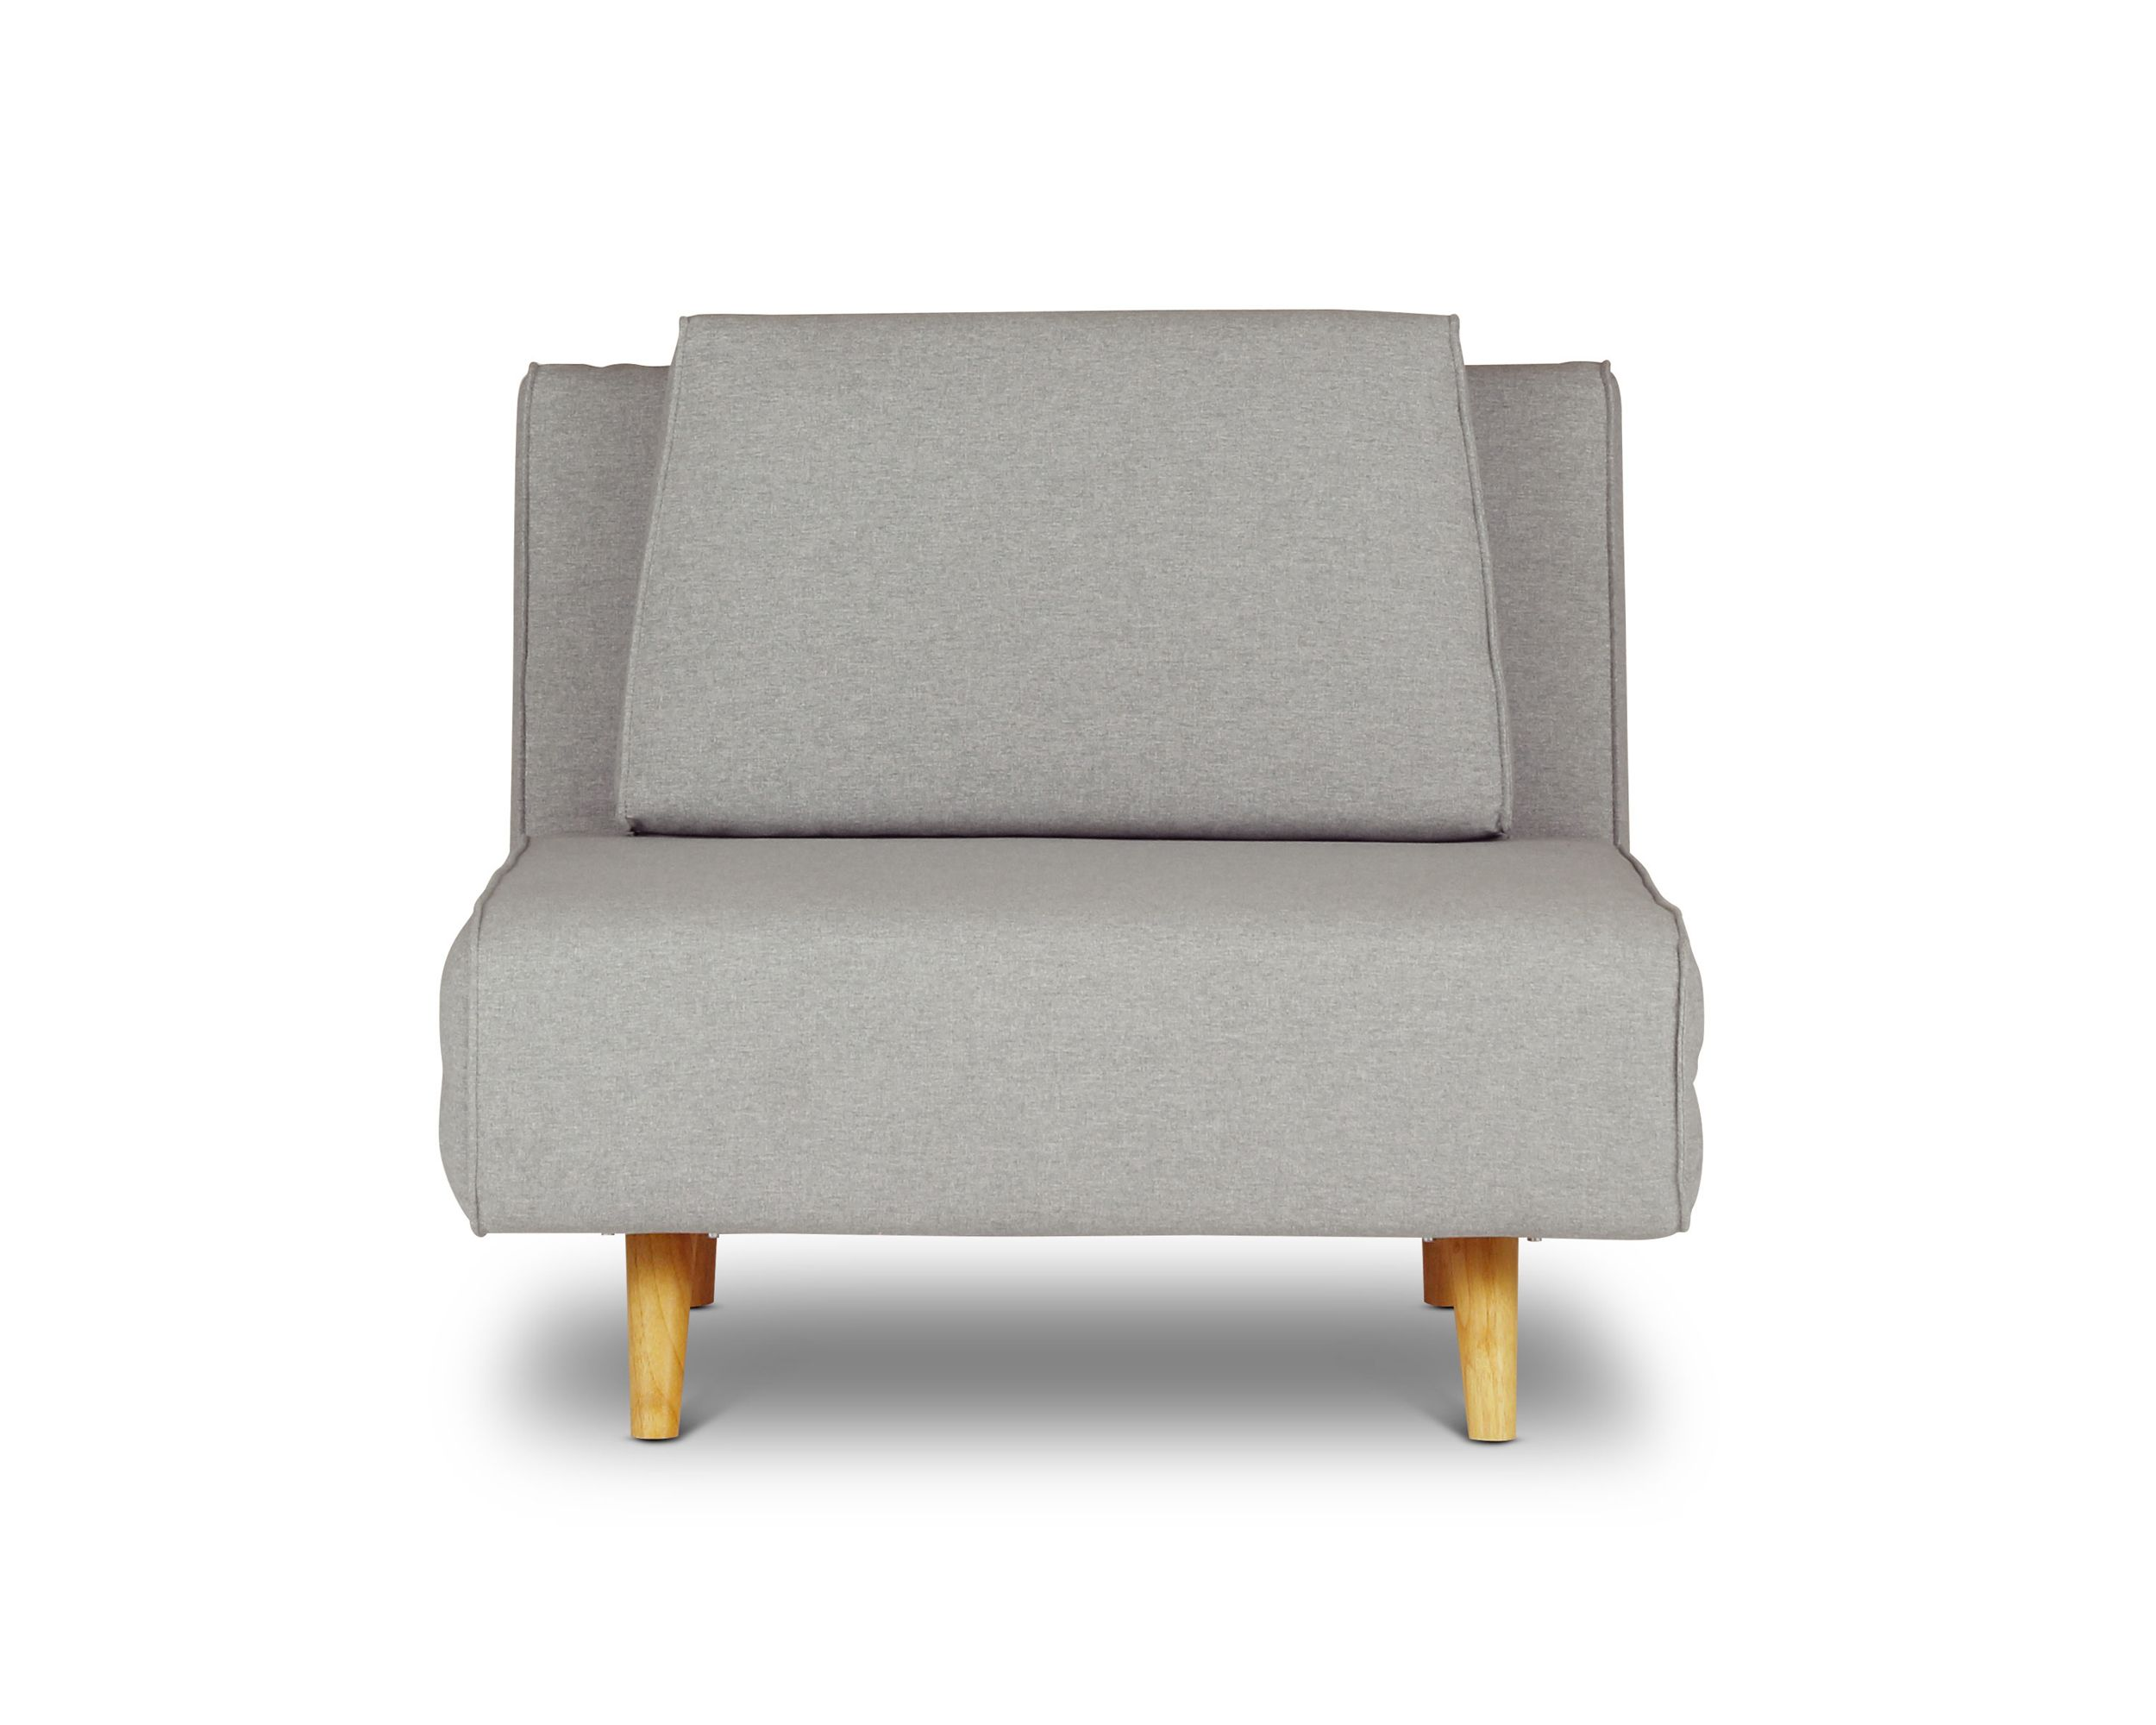 Brilliant Hana Armchair Sofa Bed Lounge Lovers Monarch Loggia Ocoug Best Dining Table And Chair Ideas Images Ocougorg